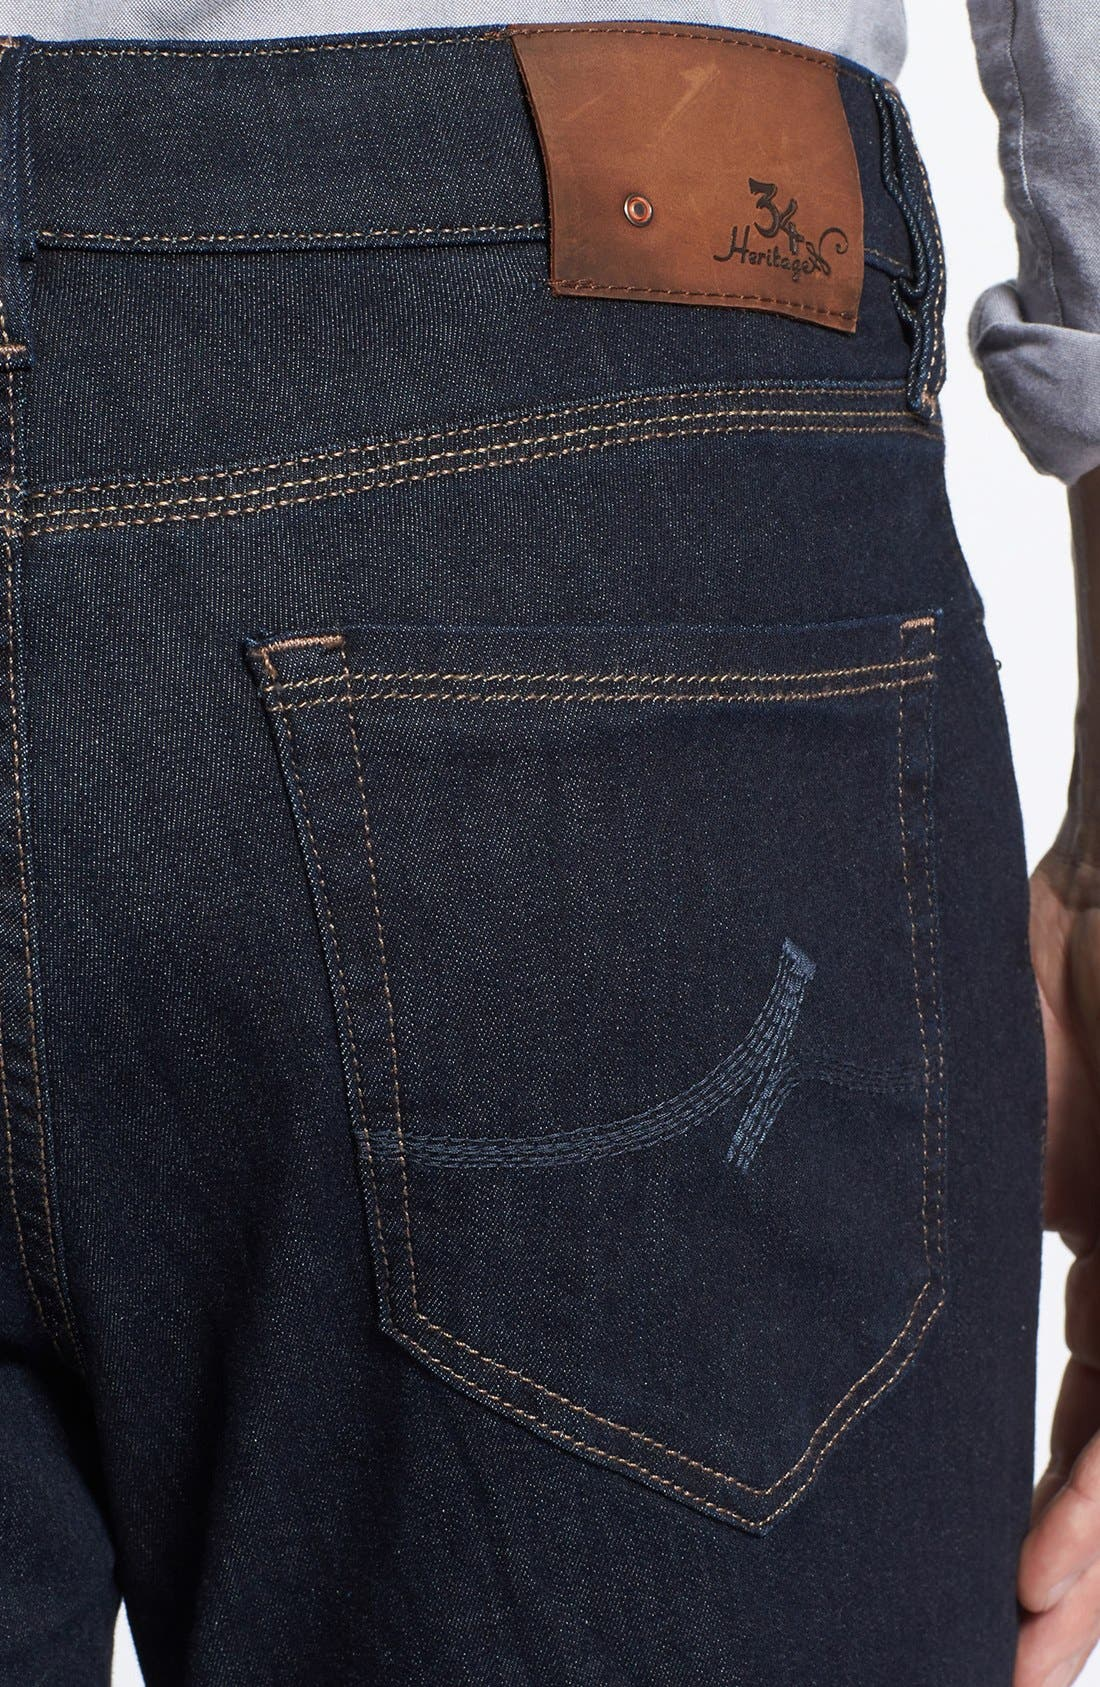 'Charisma' Classic Relaxed Fit Jeans,                             Alternate thumbnail 4, color,                             Midnight Cashmere